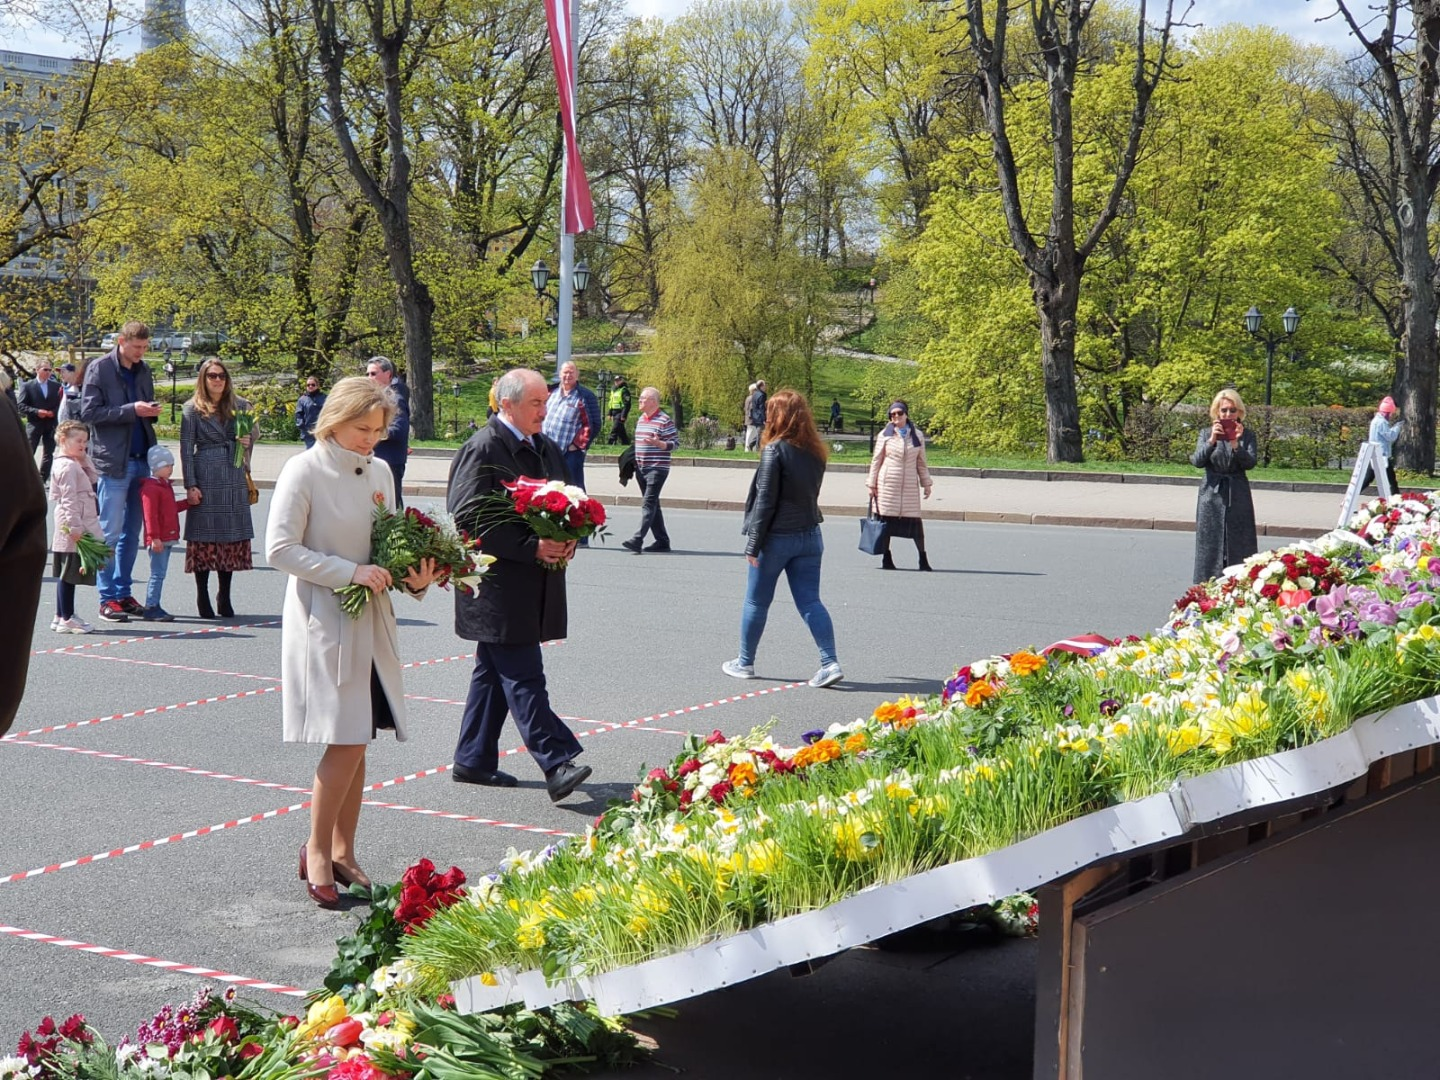 04.05.2020. In honour of the 30th anniversary of Latvia's Independence, Ivars Bickovics, Chief Justice of the Supreme Court, and Ineta Ziemele, President of the Constitutional Court, as well as the judges of the Constitutional Court Gunars Kusins and Arturs Kucs laid flowers at the Freedom Monument. This year, due to the restrictions of Covid-19, not all senior state officials visited the Freedom Monument at the same time, but did so individually or in small groups.